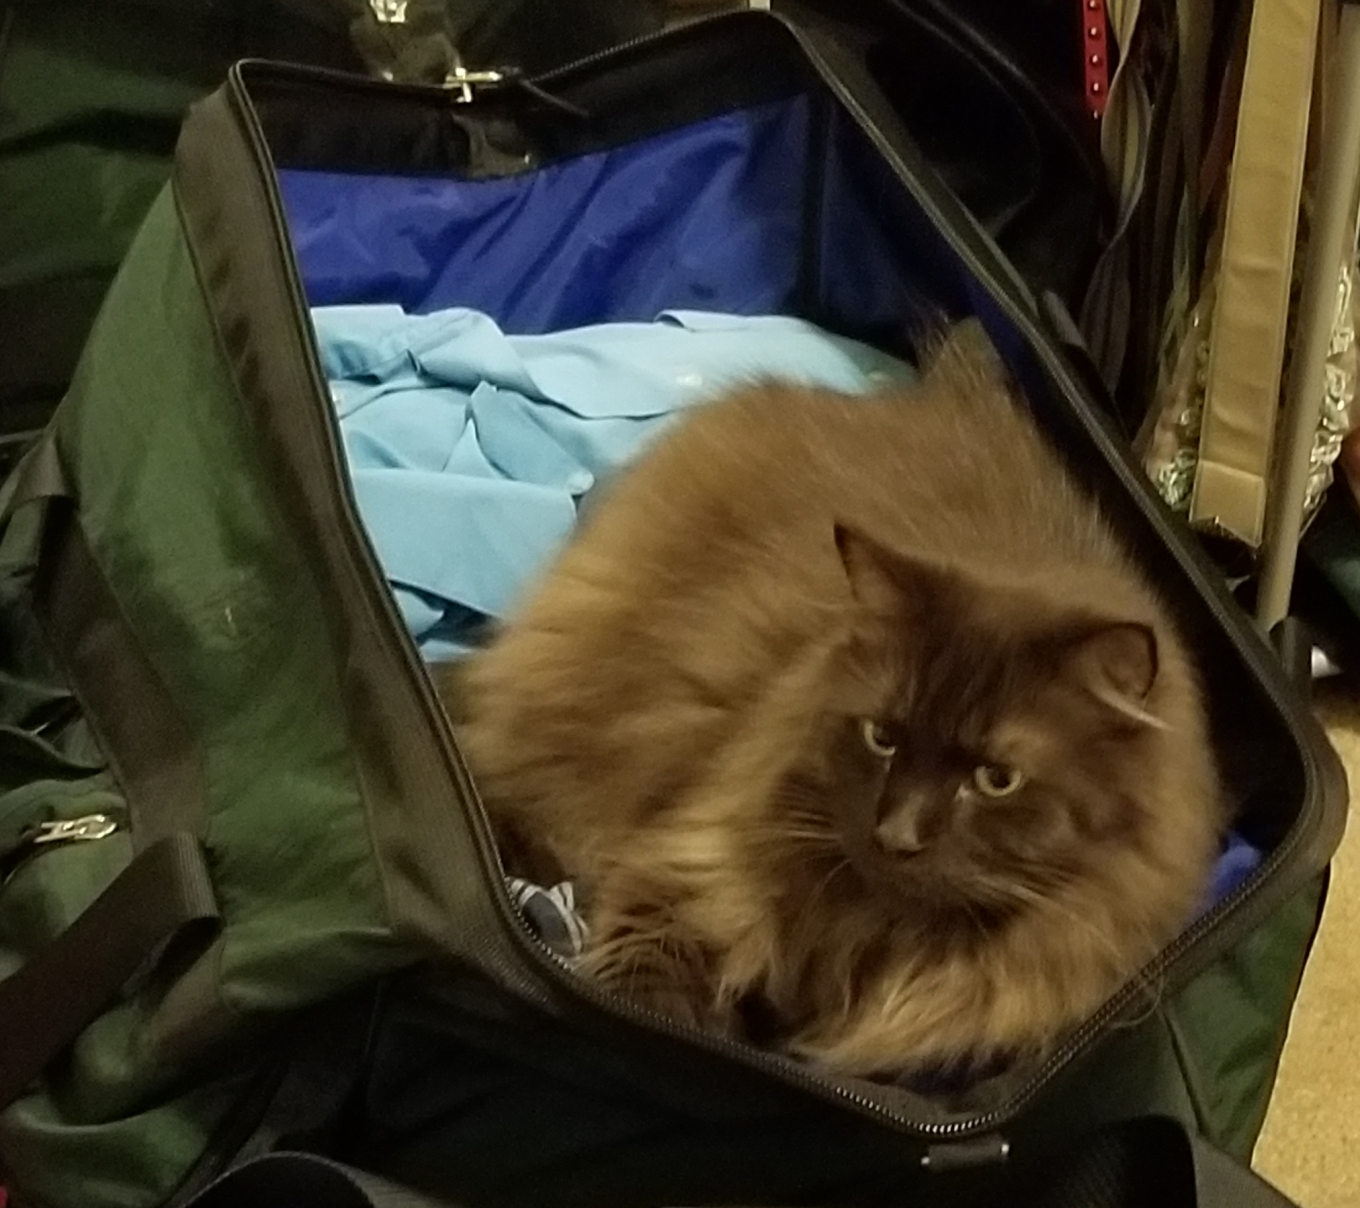 A Large Brown Fluffy Cat phoning in an attempt to be smuggled in luggage.